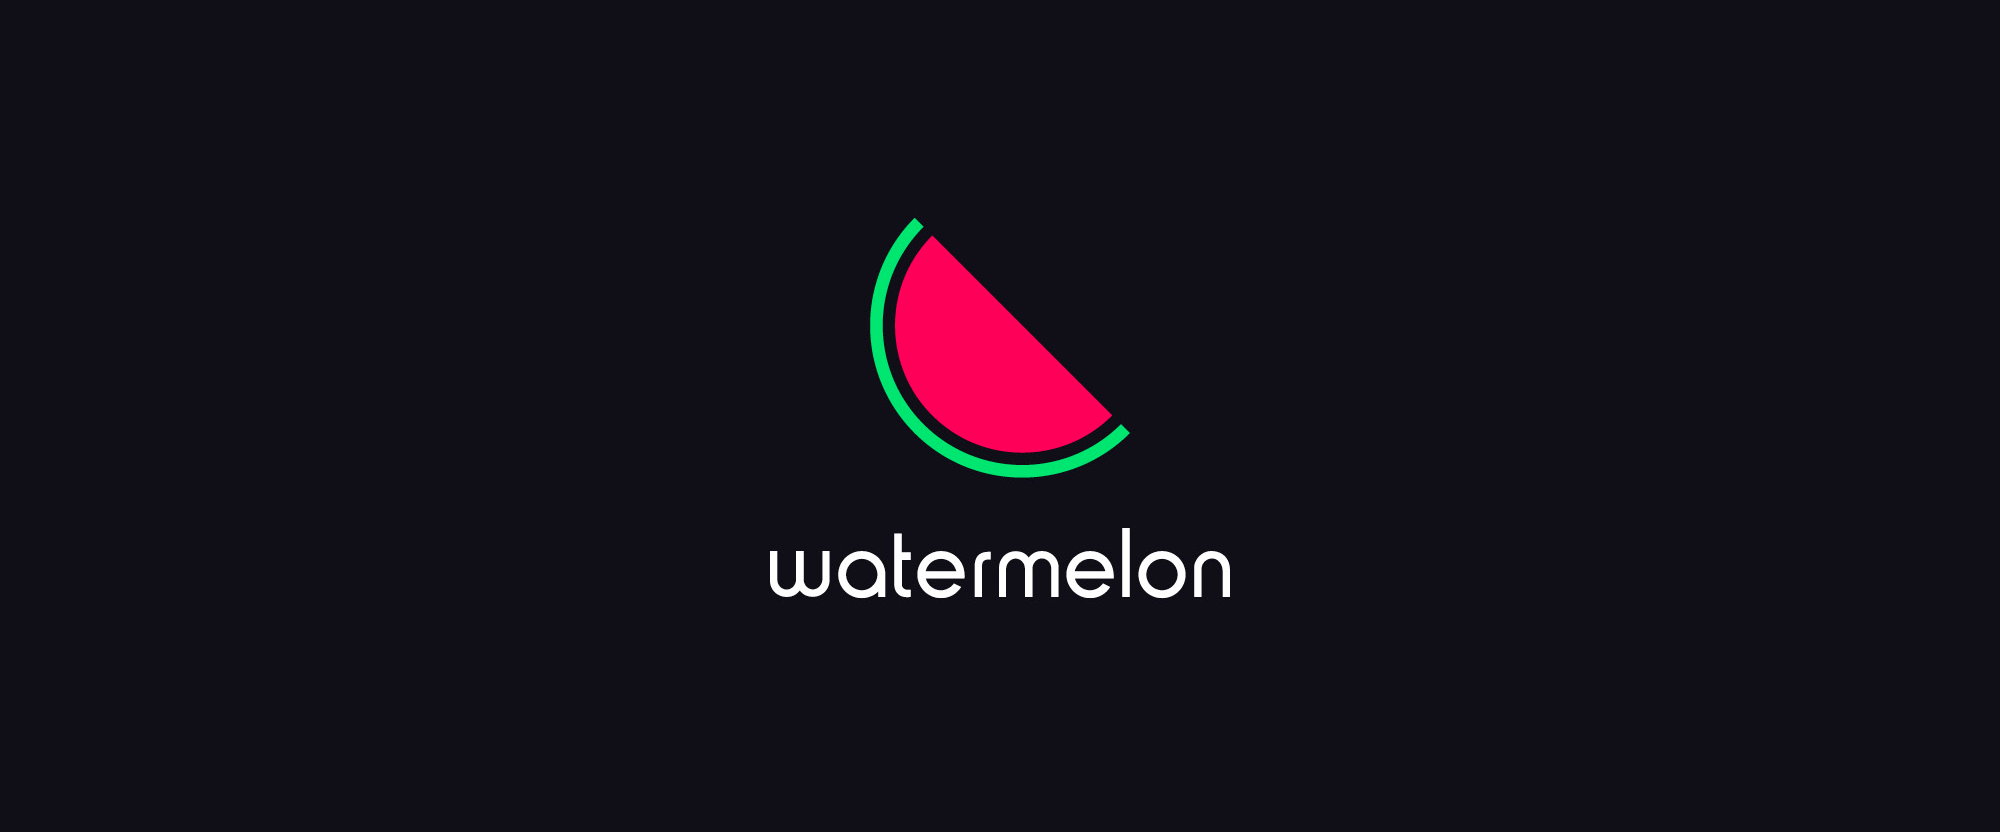 New Logo and Identity for Watermelon by Sonnet